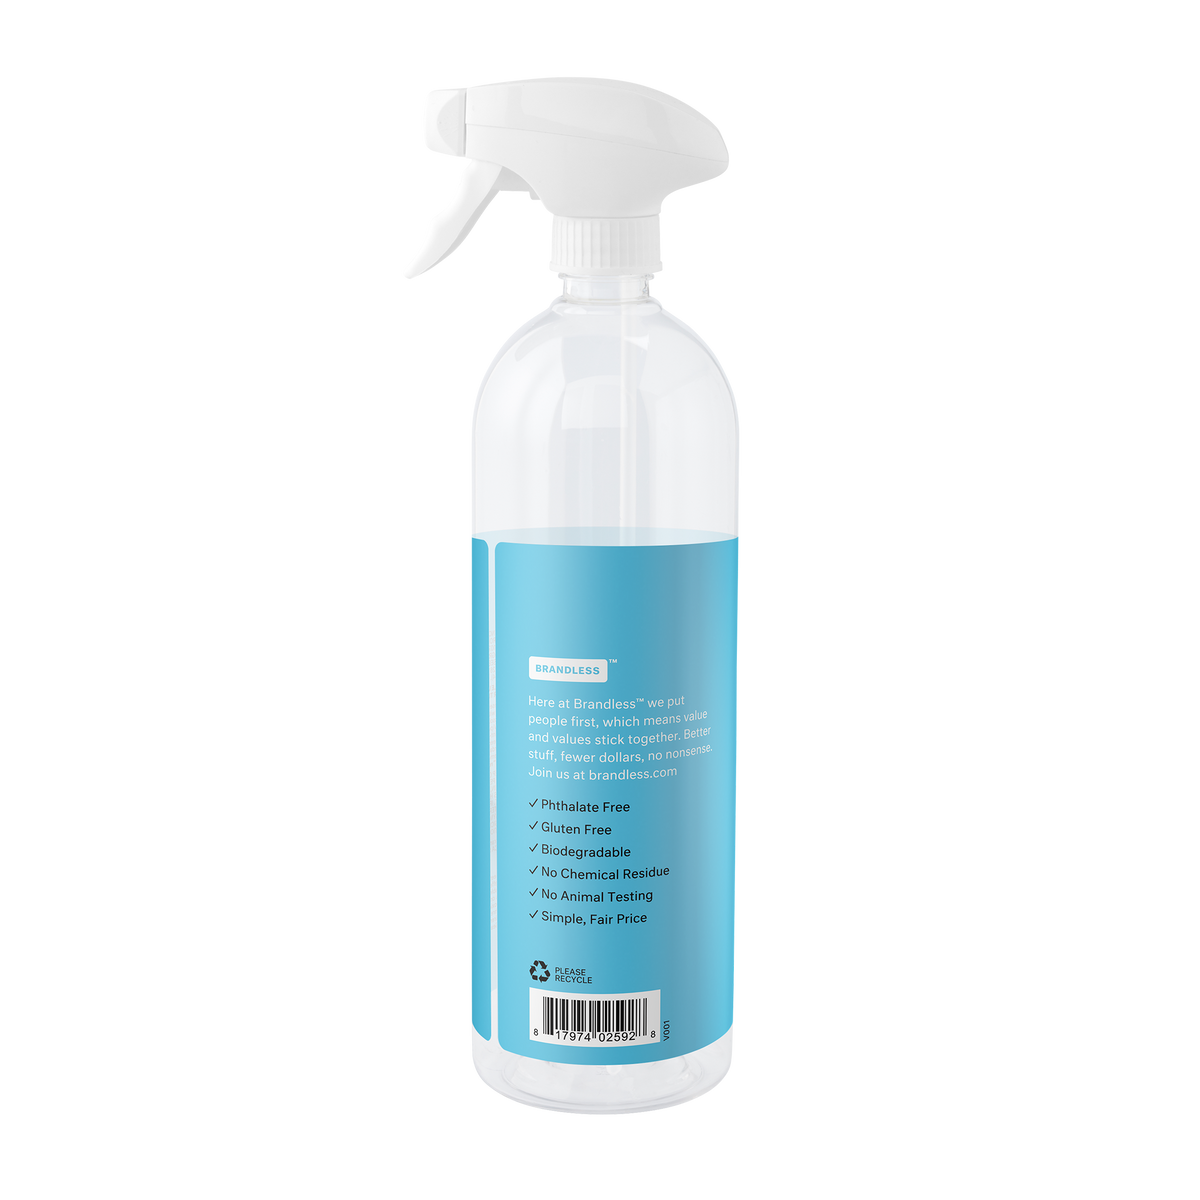 Refillable Multi Surface Cleaner - Summer Breeze